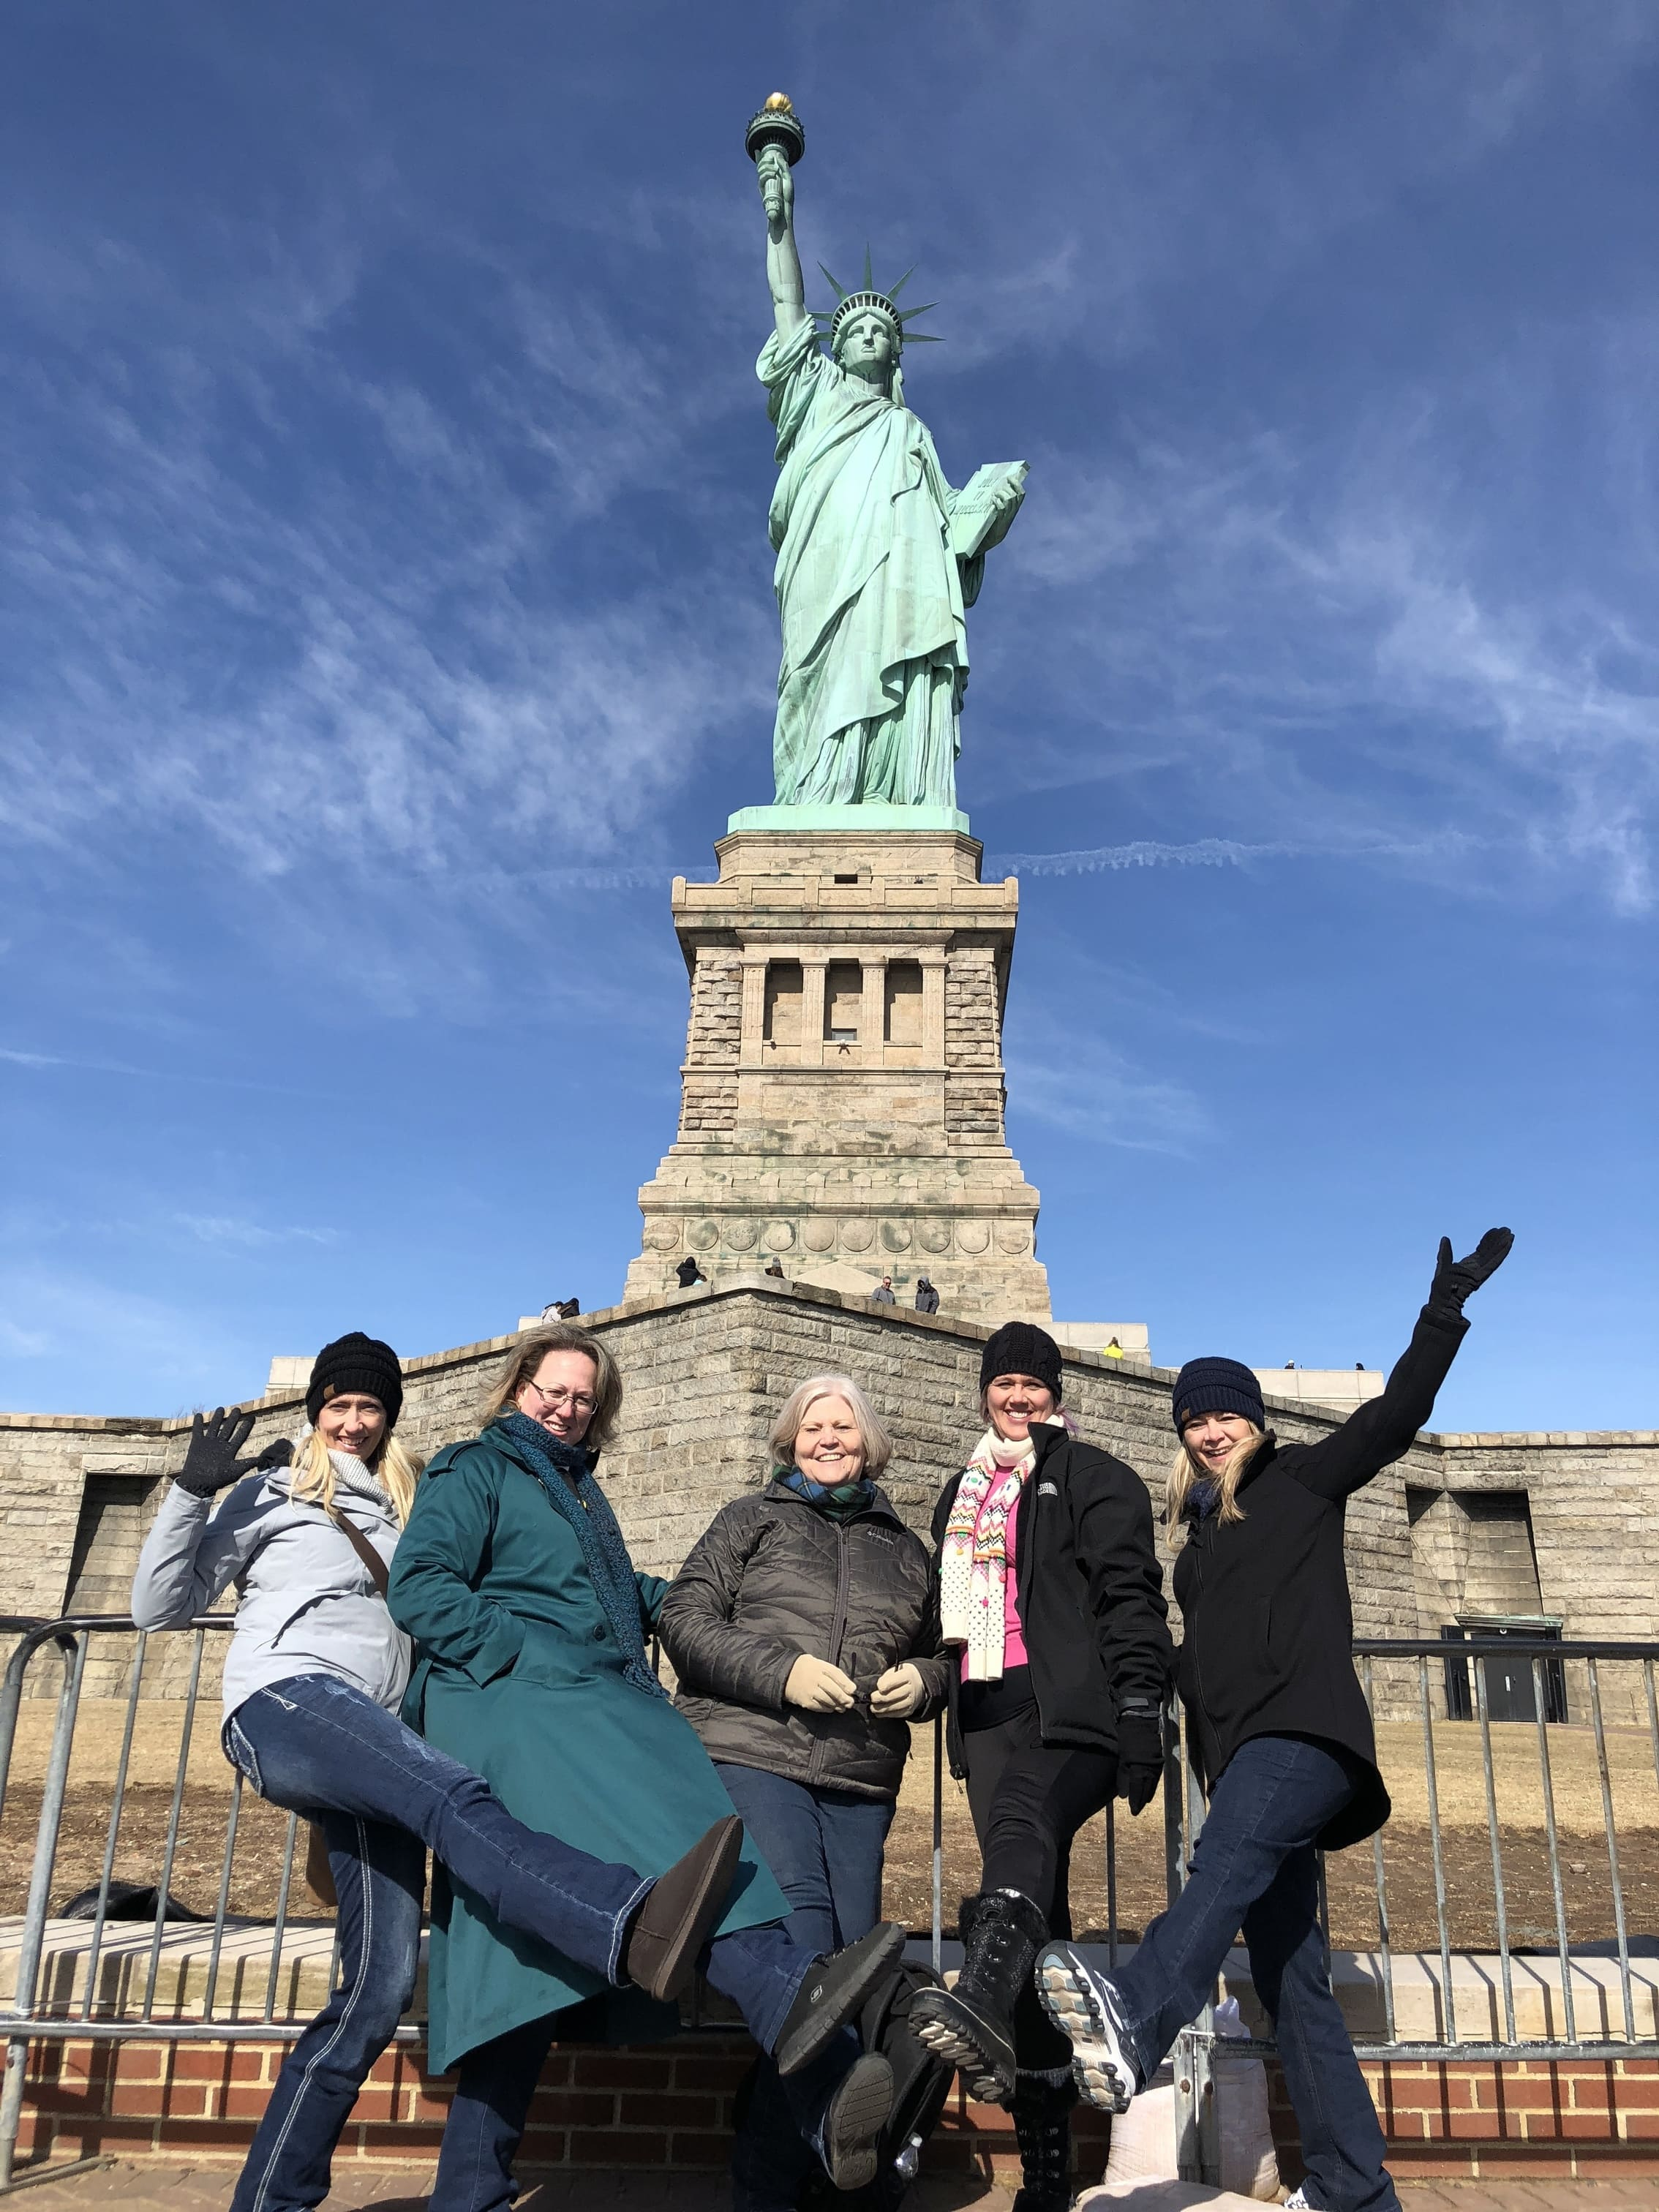 fbla and deca teachers posing in front of the statue of liberty during a new york student trip